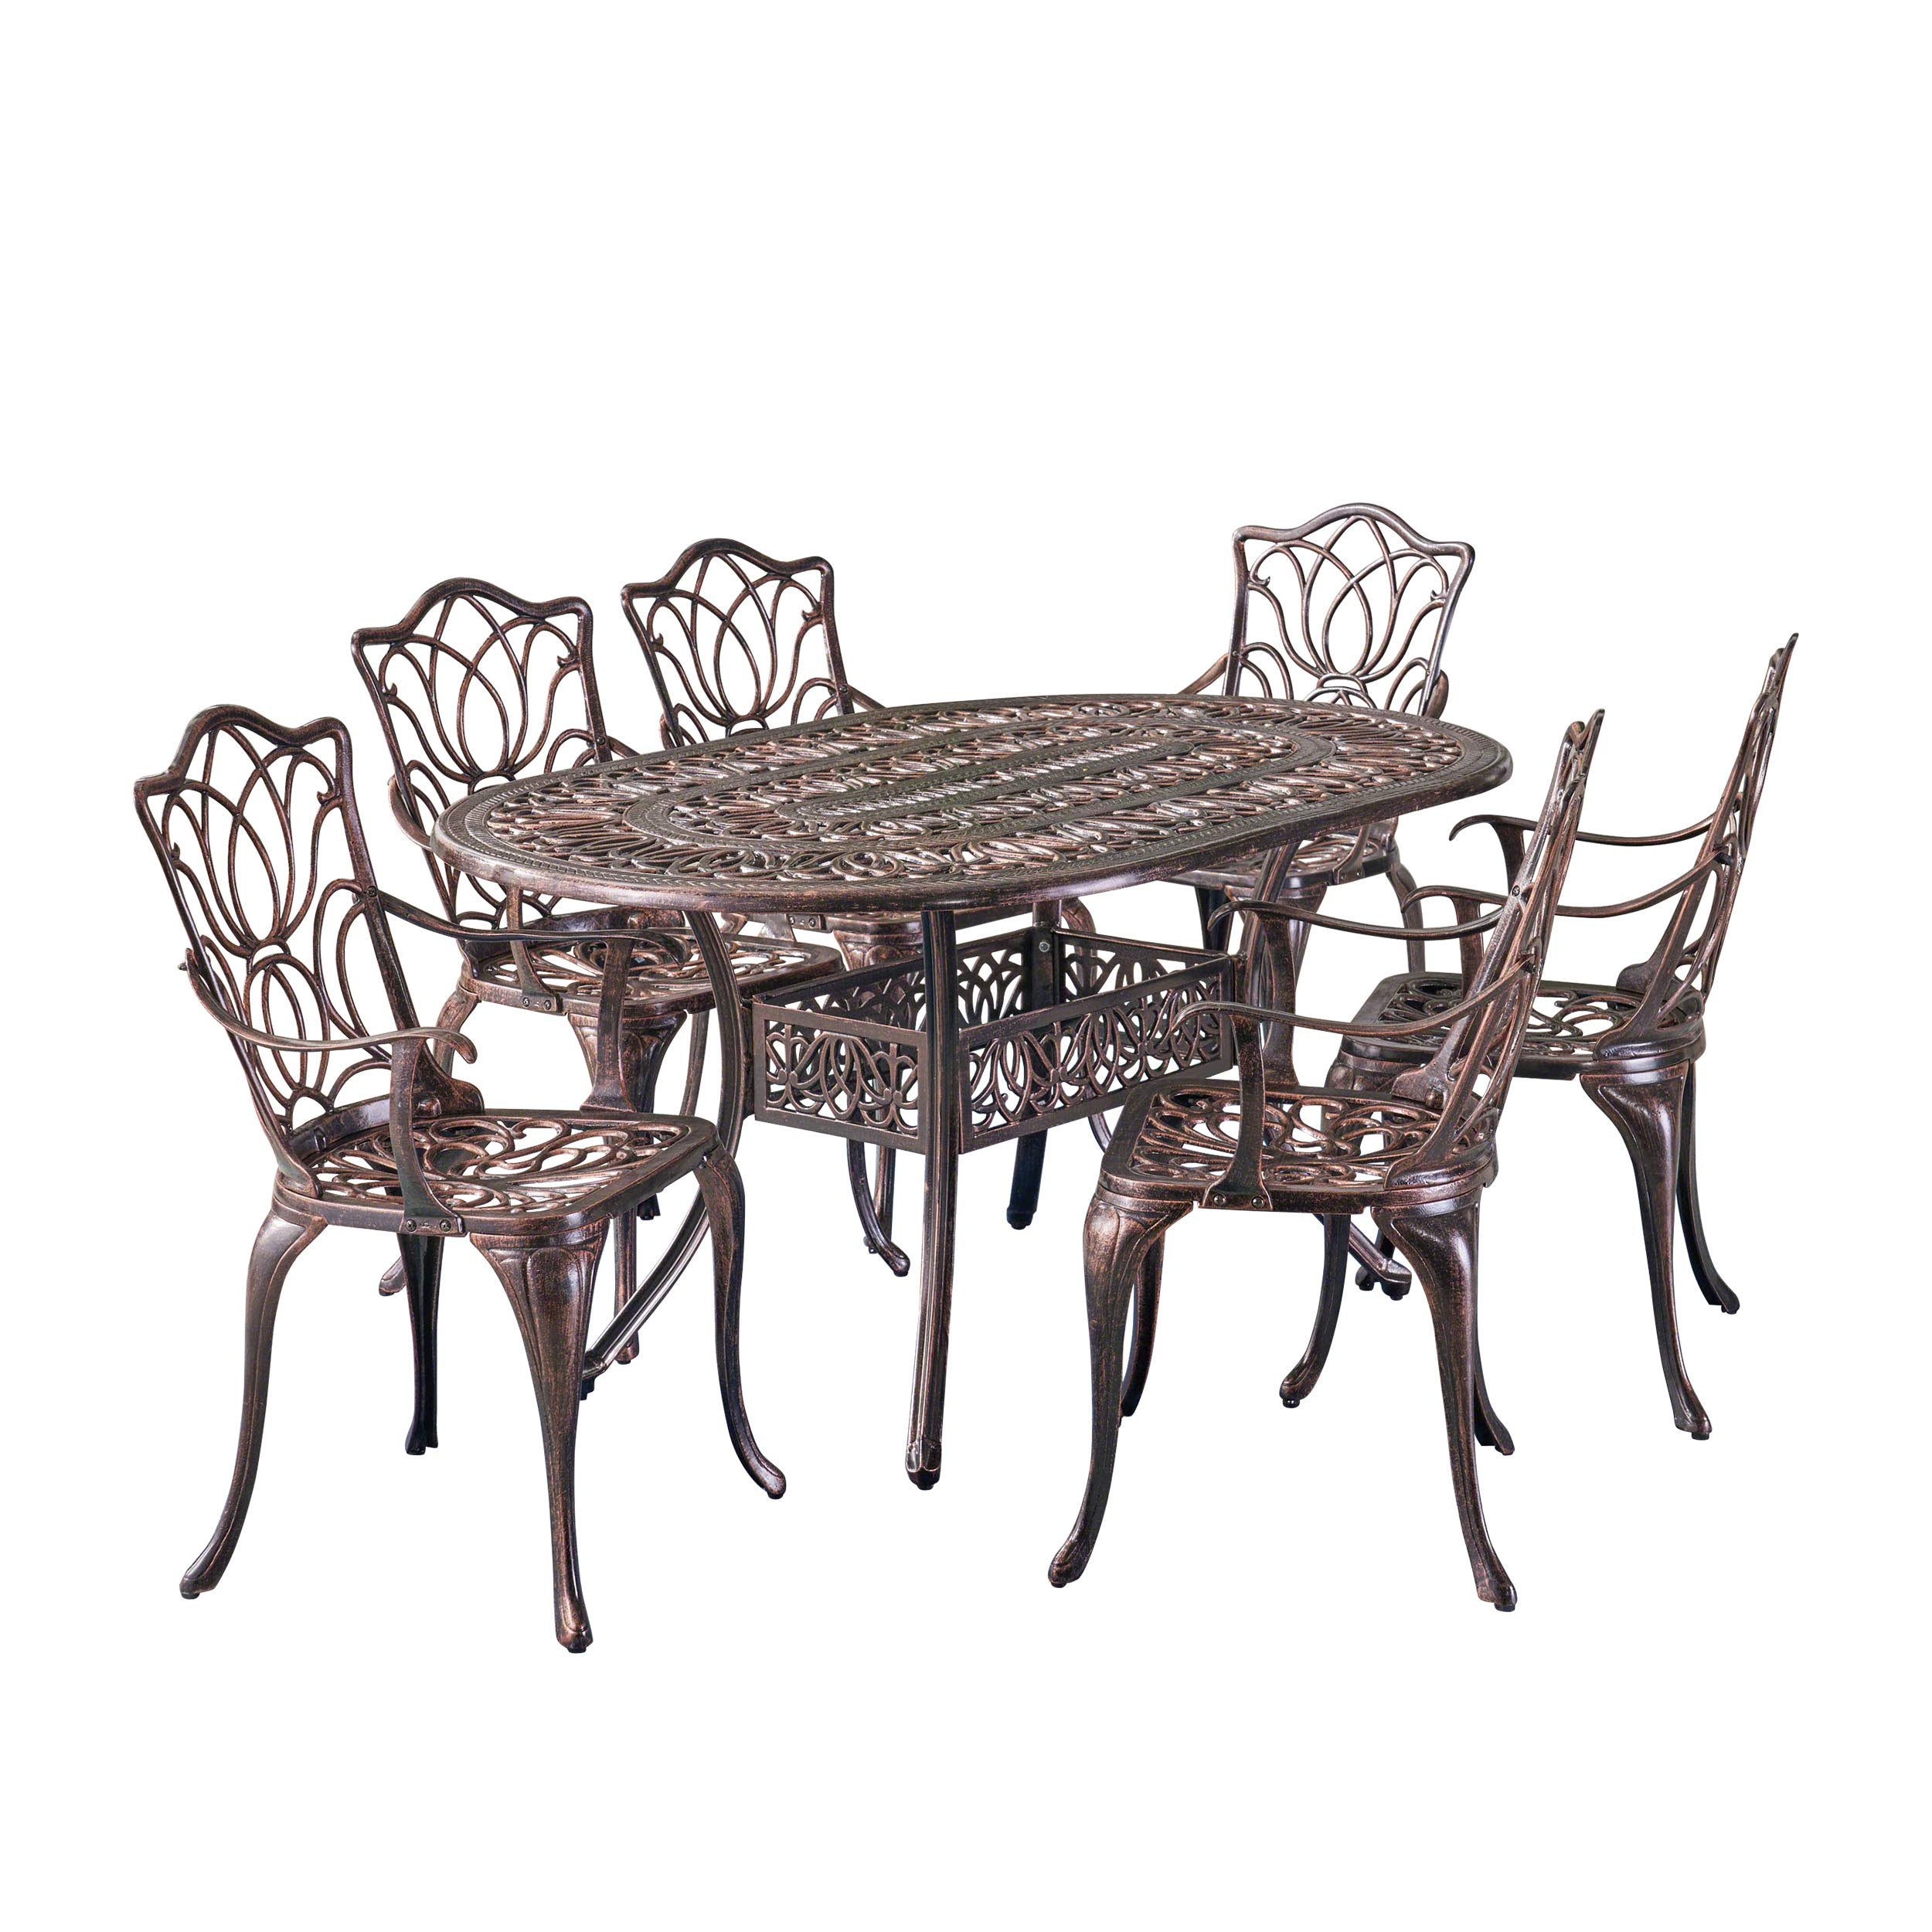 Christopher Knight Home Gardena Outdoor Furniture Dining Set, Table and Chairs for Patio or Deck in Copper (7-Piece Set)